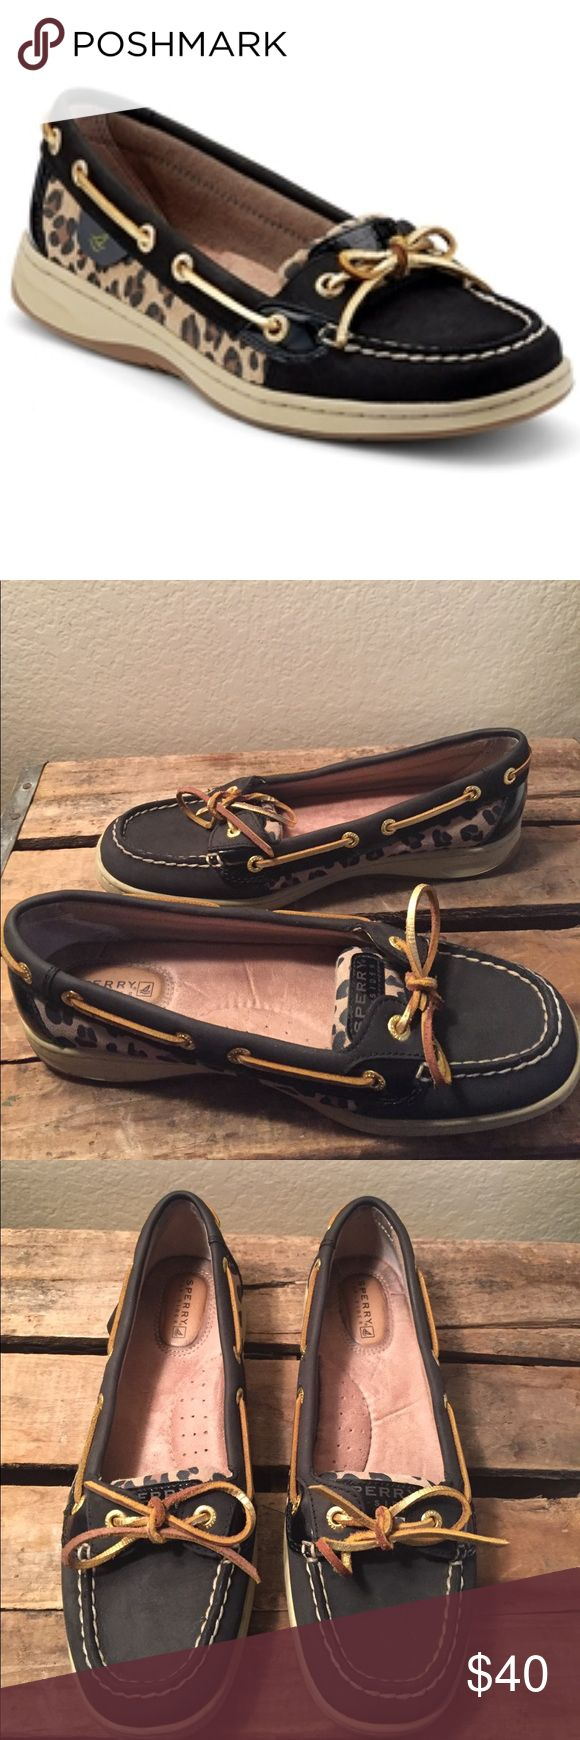 Sperry Top-Sider Angelfish Boat Shoe Women's Size 7.5. Preowned and in great condition. Please see all 7 photos. No holes and plenty of use left in these. Sperry Top-Sider Shoes Flats & Loafers